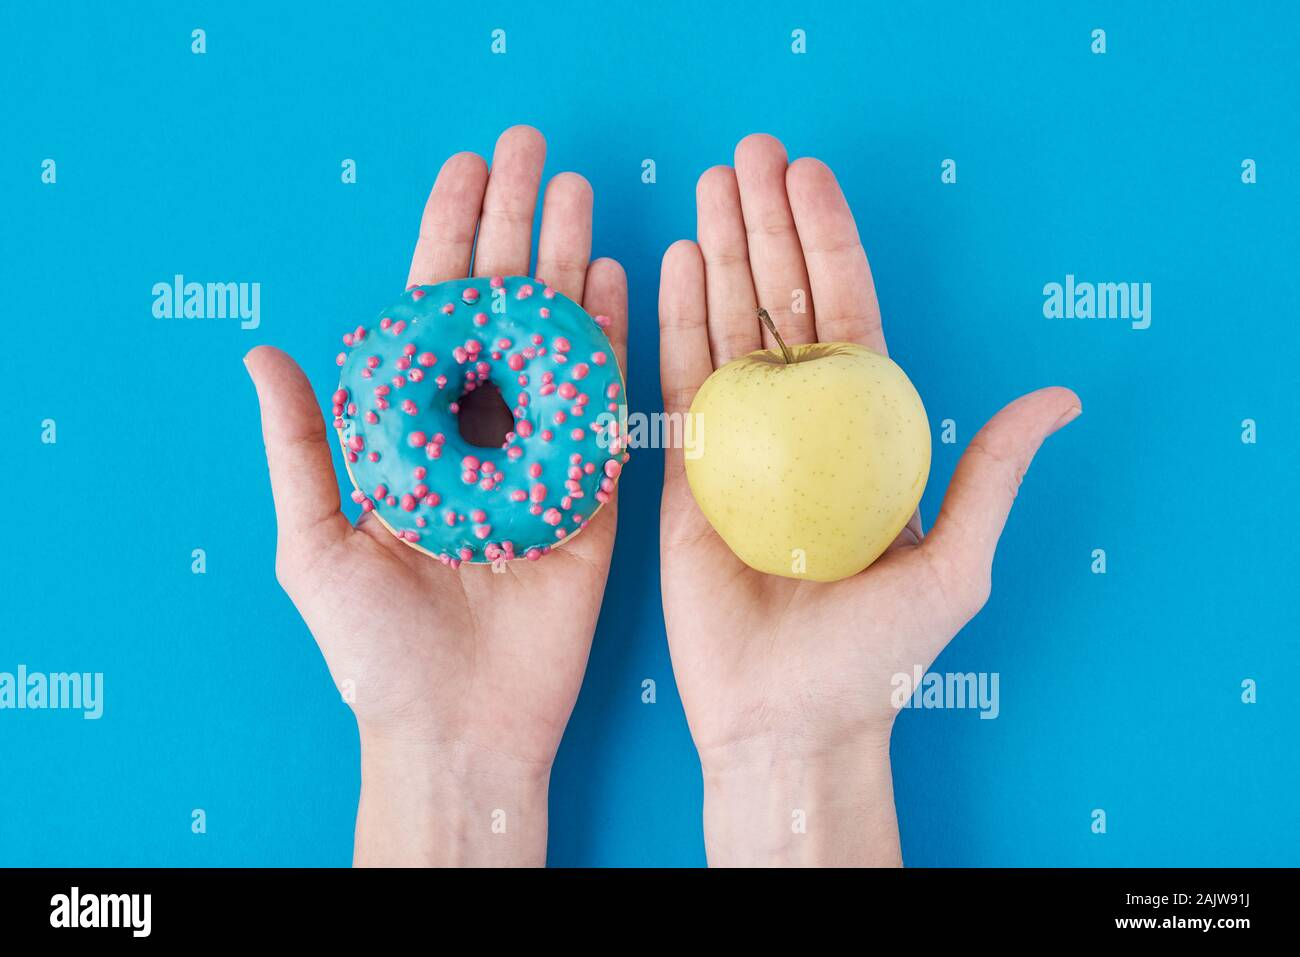 Woman choosing betwen apple and donut in her hands. Healthy food concept Stock Photo